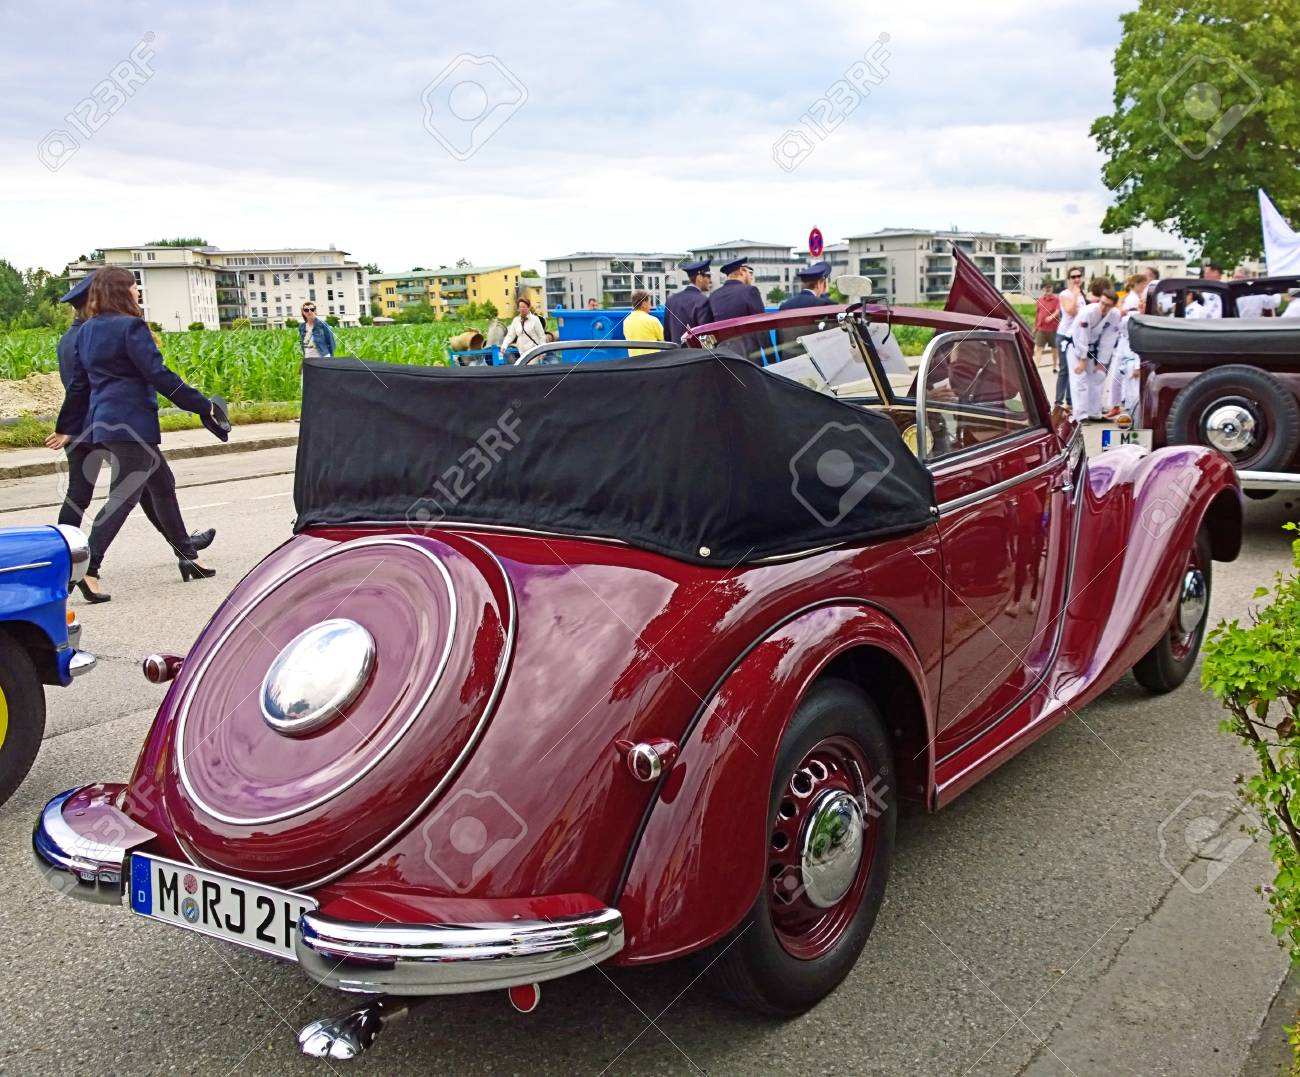 GARCHING, GERMANY - Vintage Cars At The Traditional Parade In.. Stock  Photo, Picture And Royalty Free Image. Image 60445557.